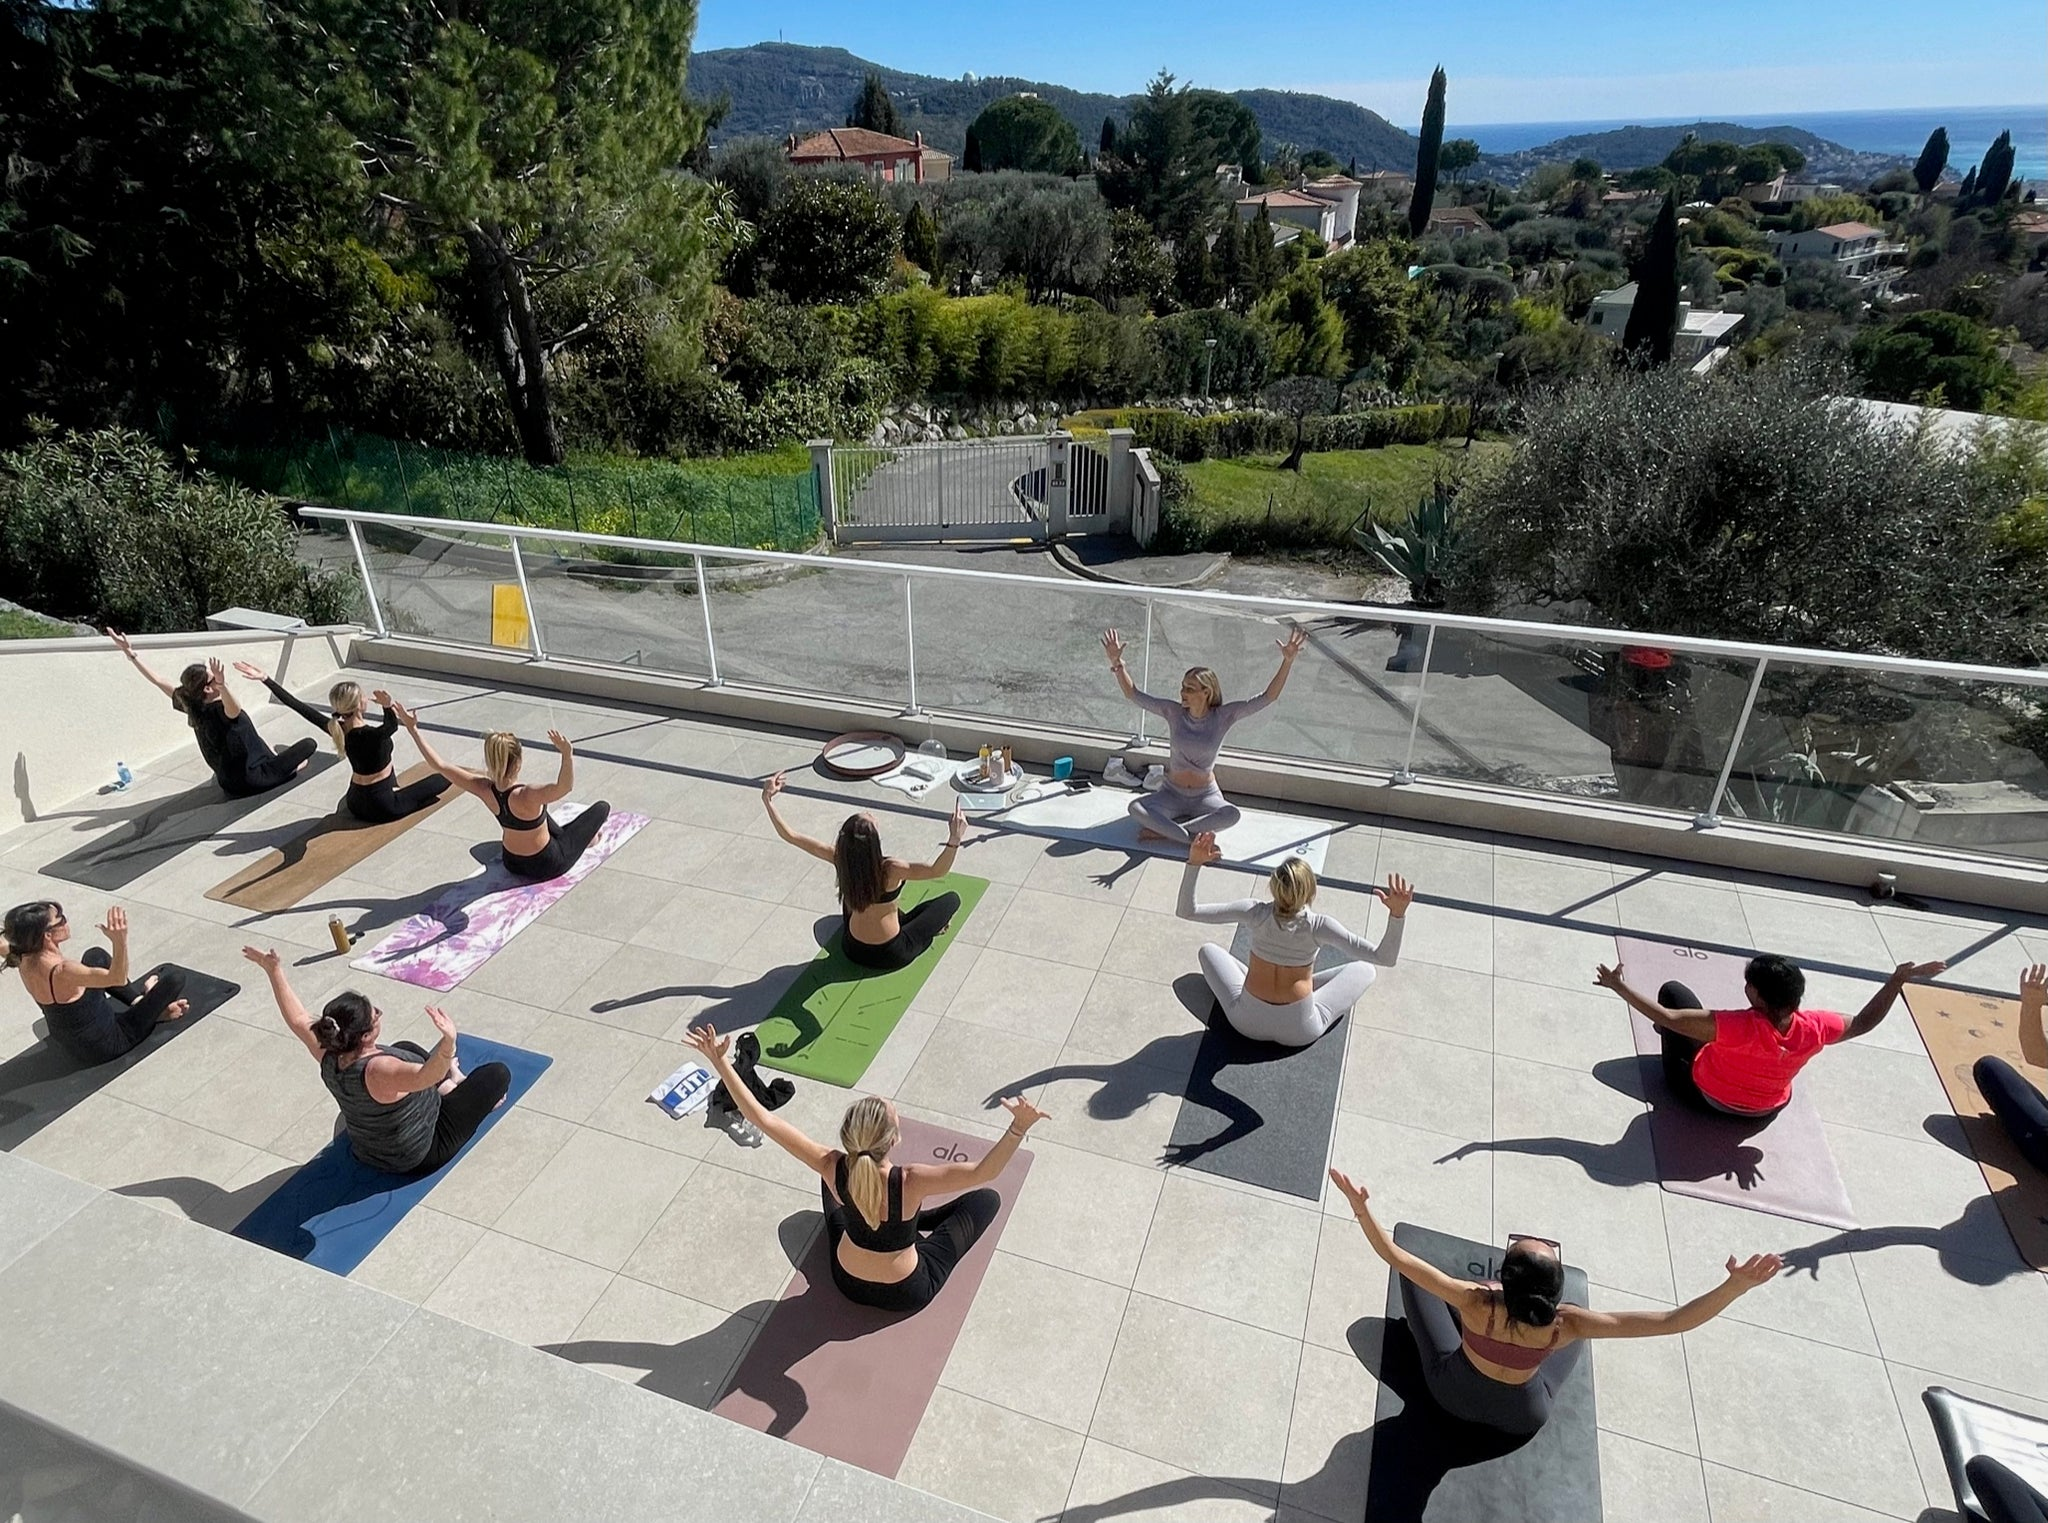 Group of people safely gathering for outdoor yoga class in Nice, France per COVID-19 safety regulations and guidelines.